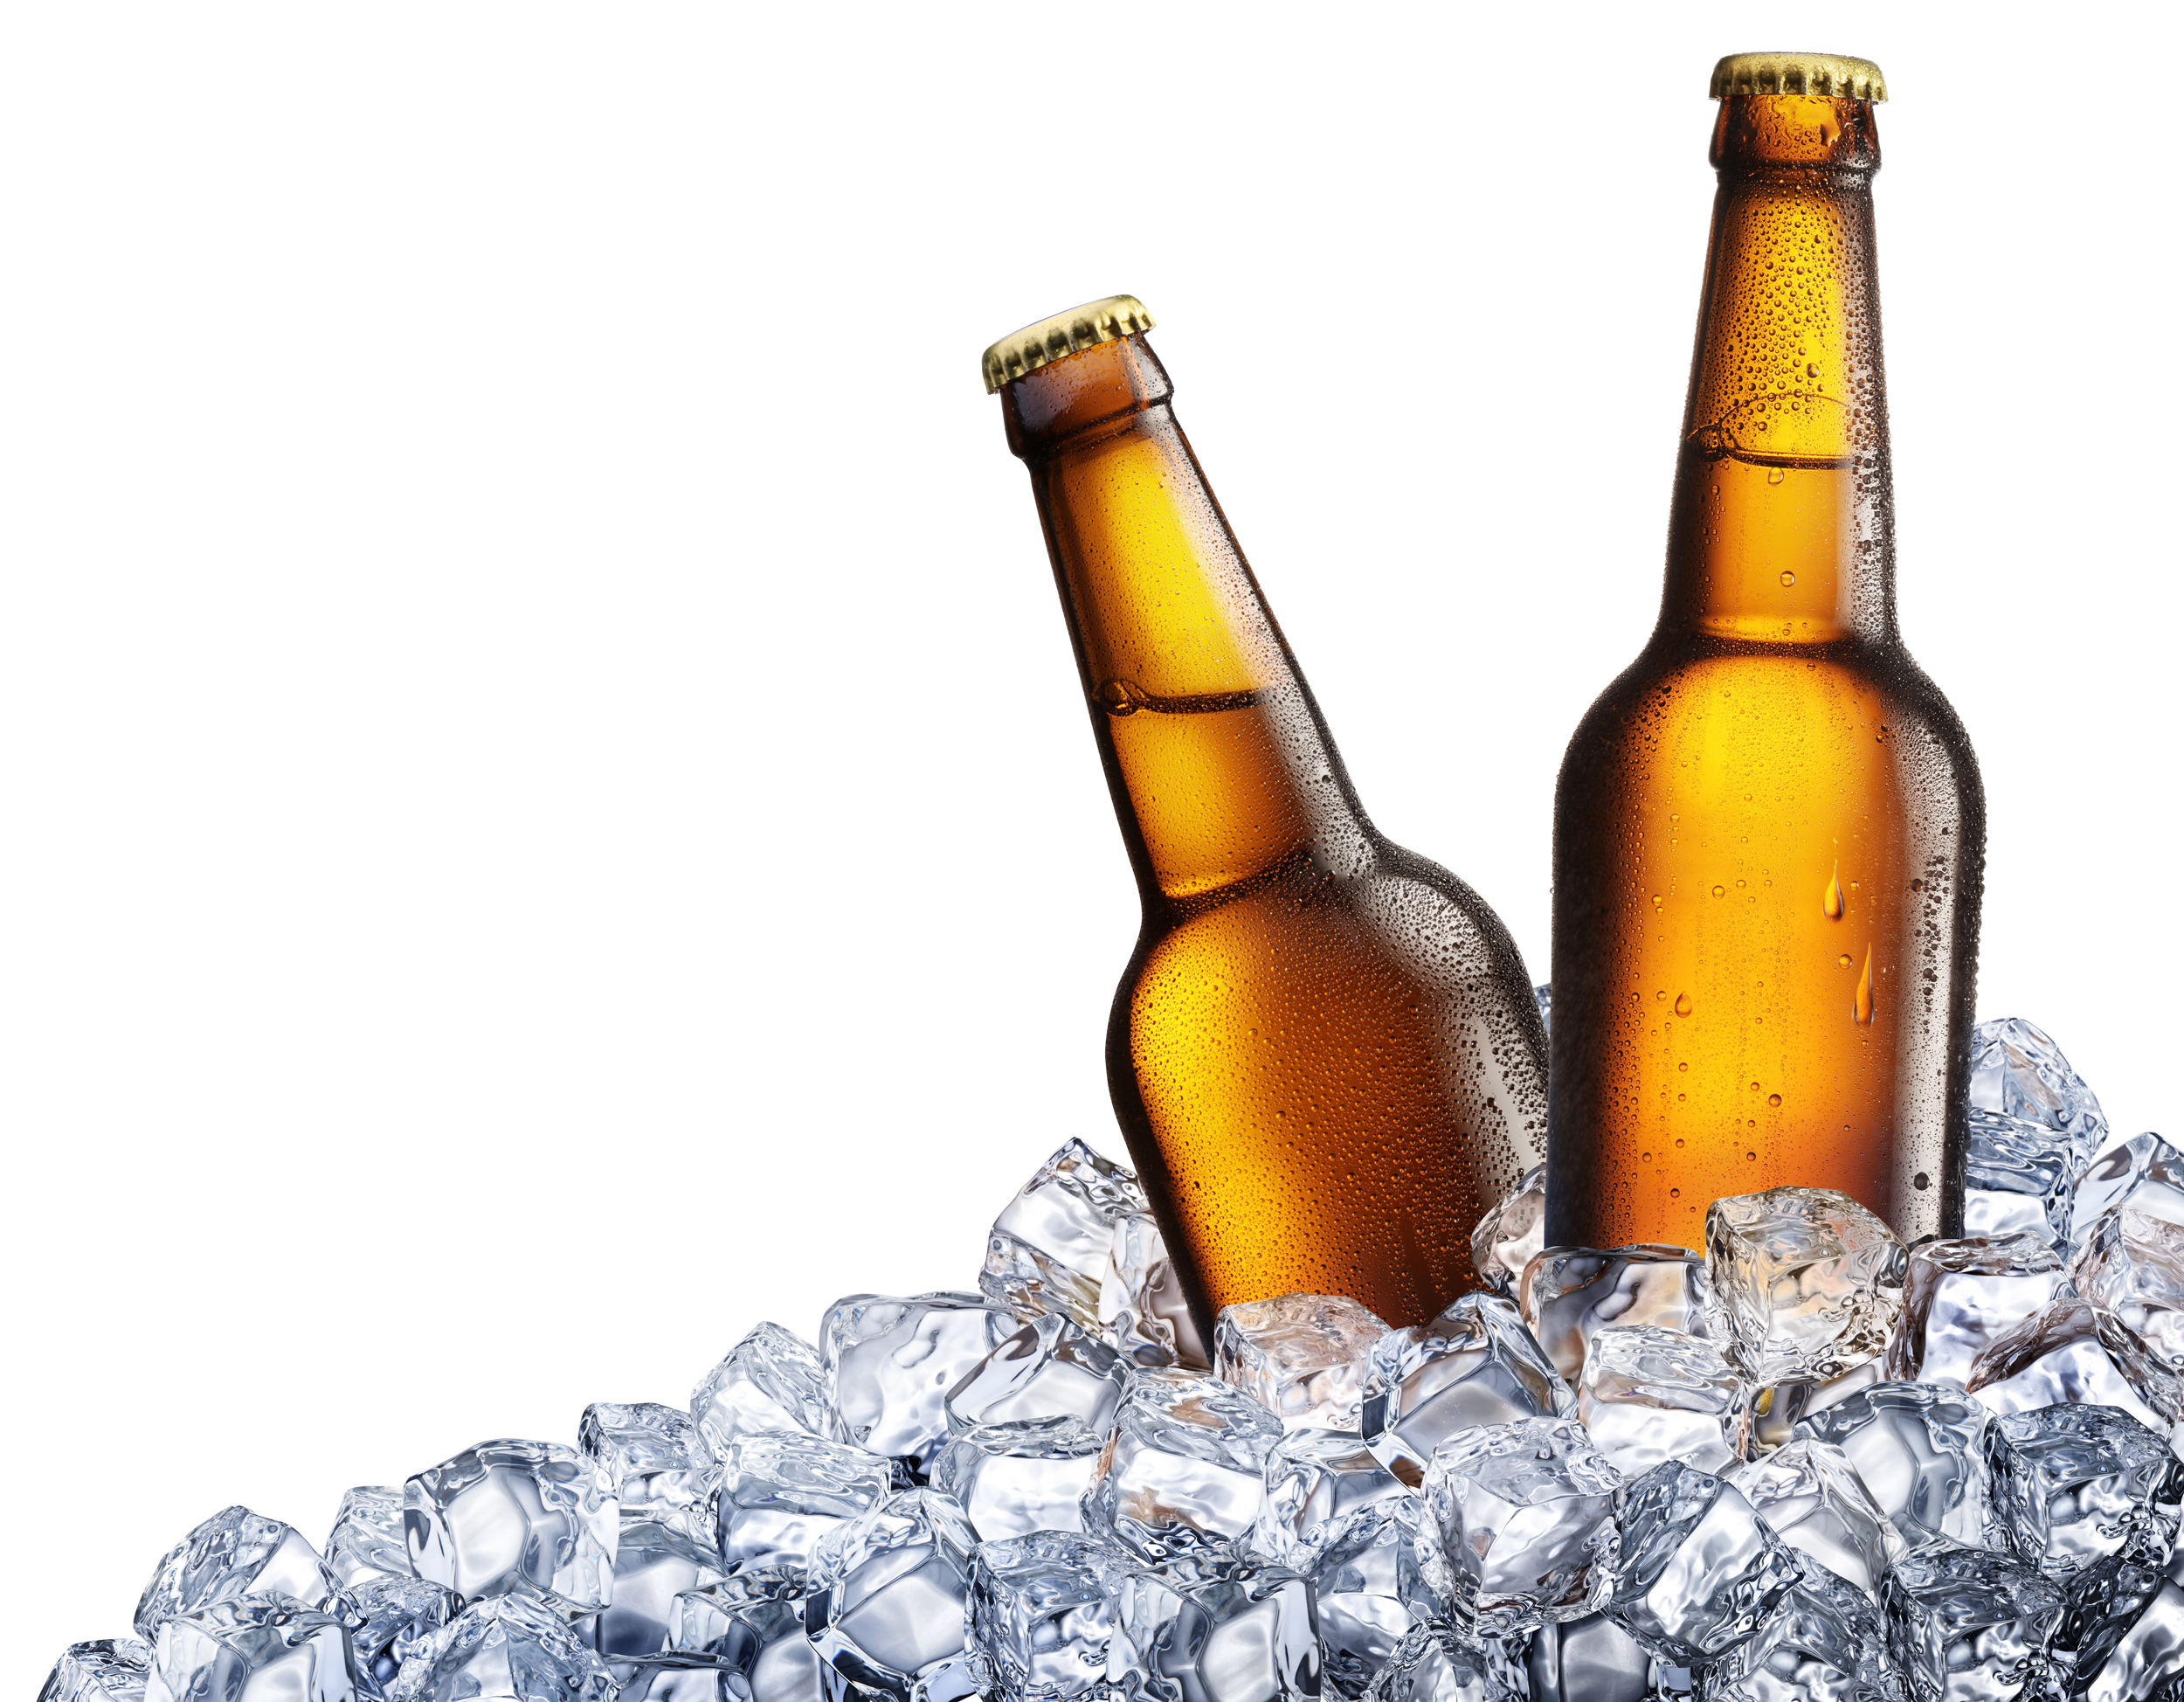 Beer Bottles on Ice